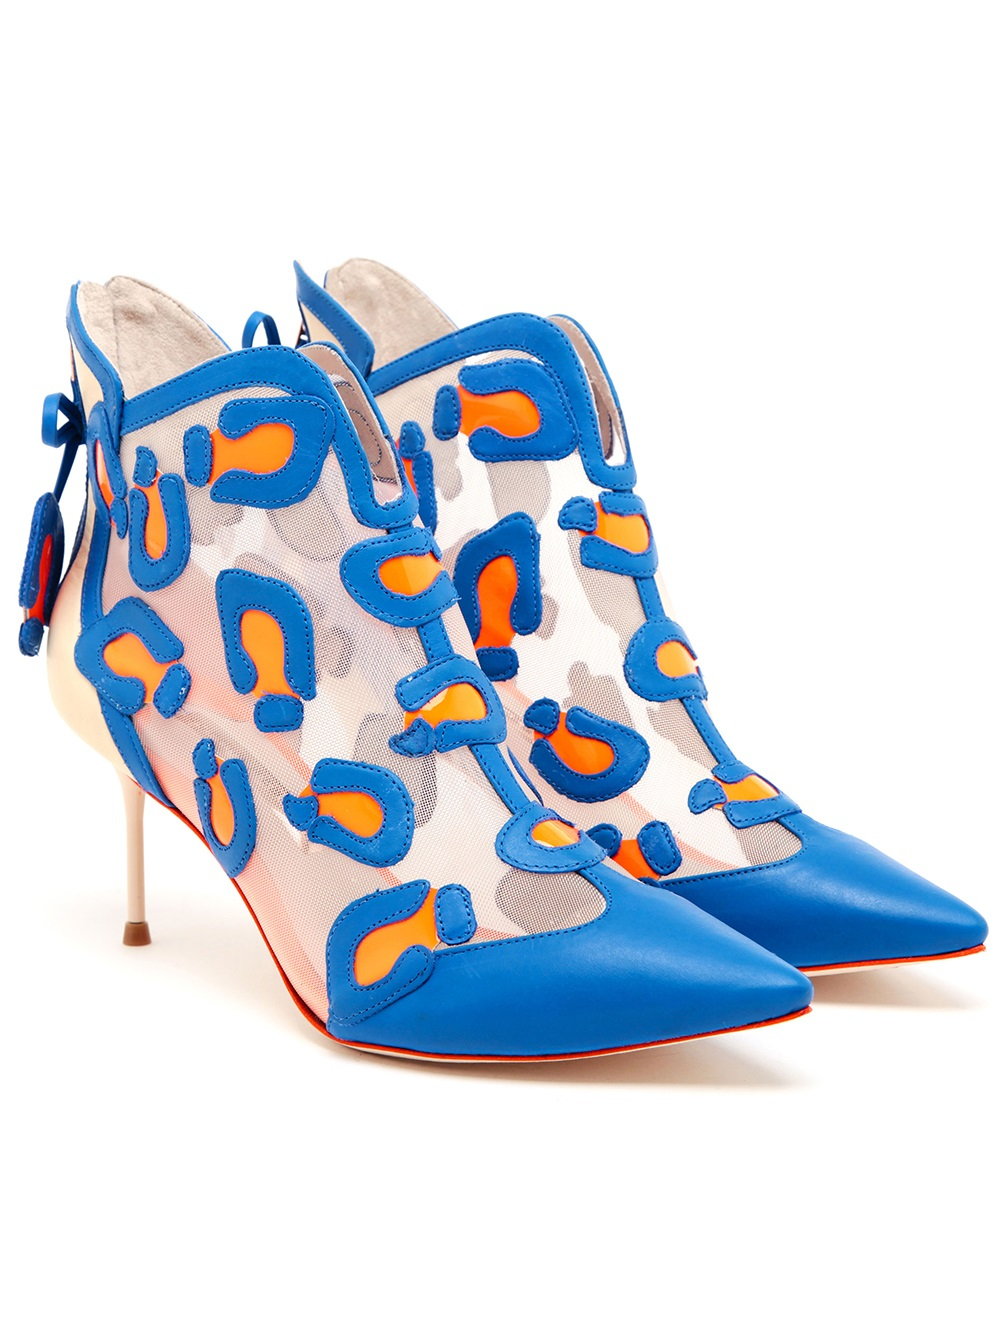 Sophia Webster Cara Leather and Mesh Ankle Boots in Yellow & Orange (Blue)